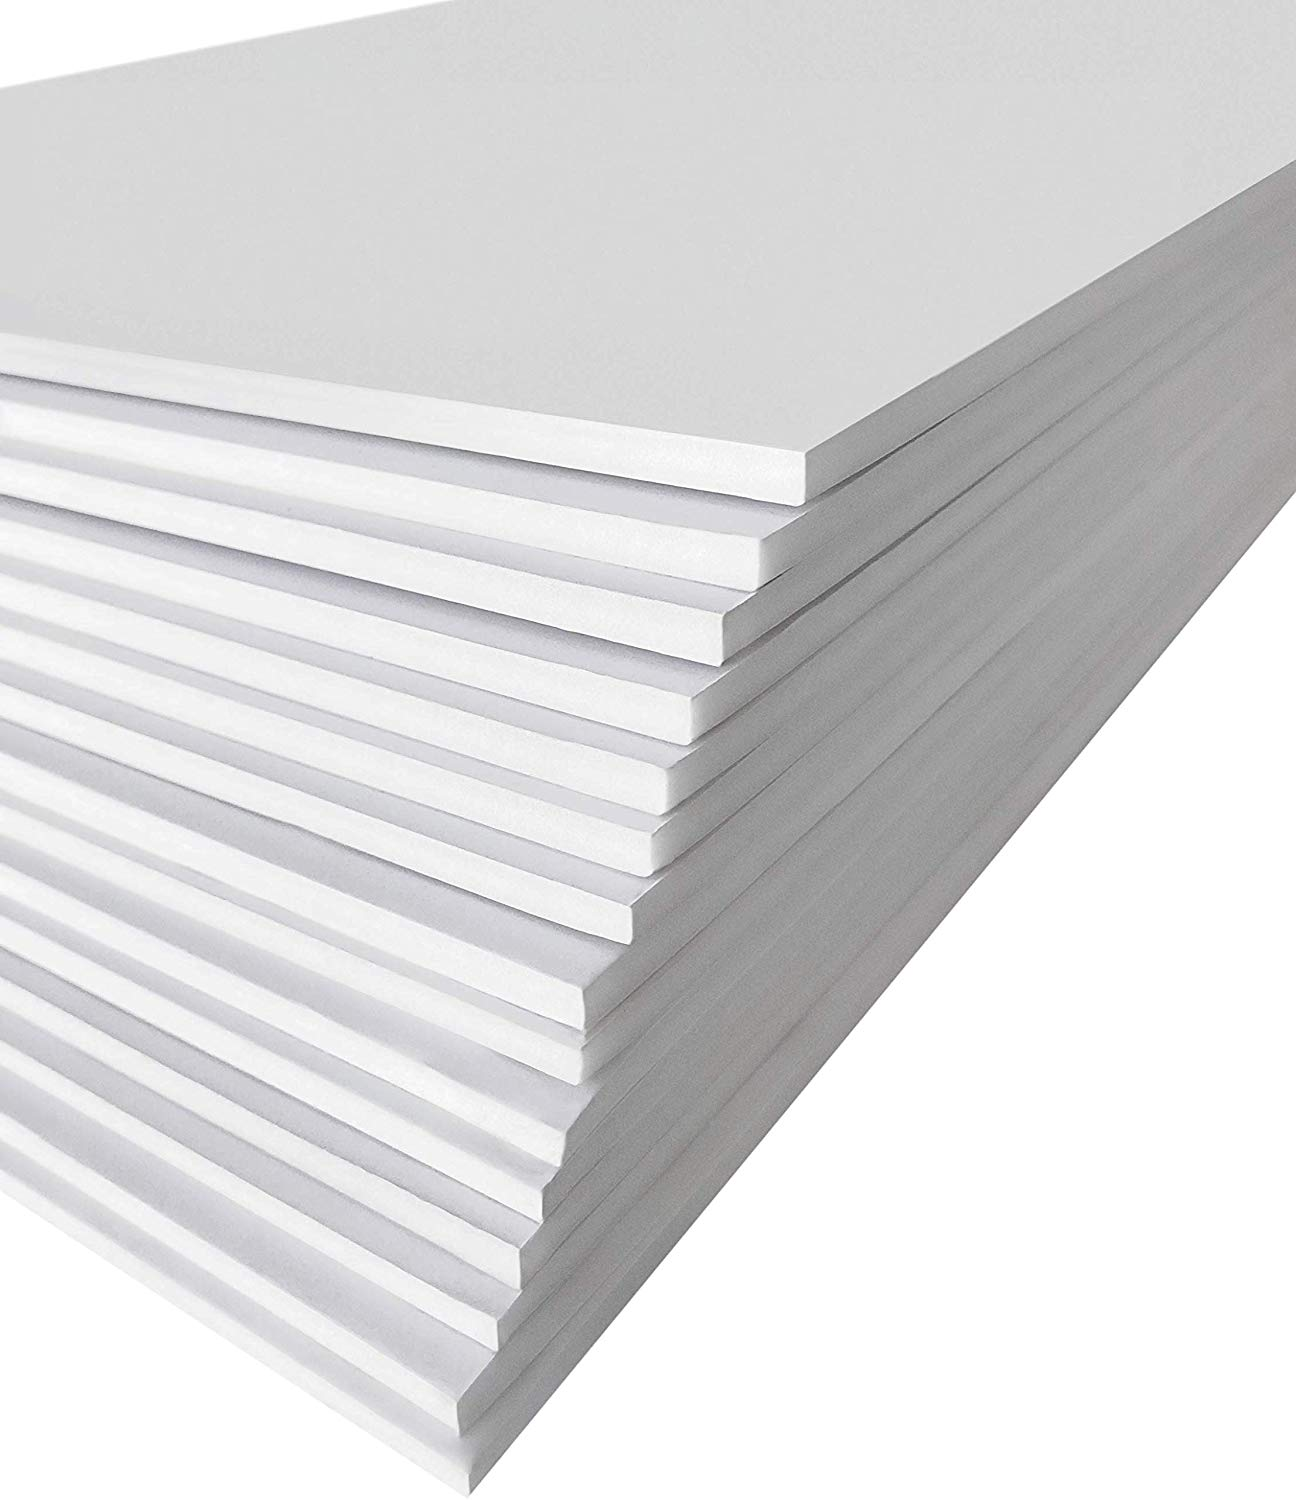 Excelsis Design, Pack of 15, Foam Boards (Acid-Free), 8x10 Inches (Many Sizes Available), 3/16 Inch Thick Mat, White with White Core (Foam Core Backing Boards, Double-Sided Sheets)